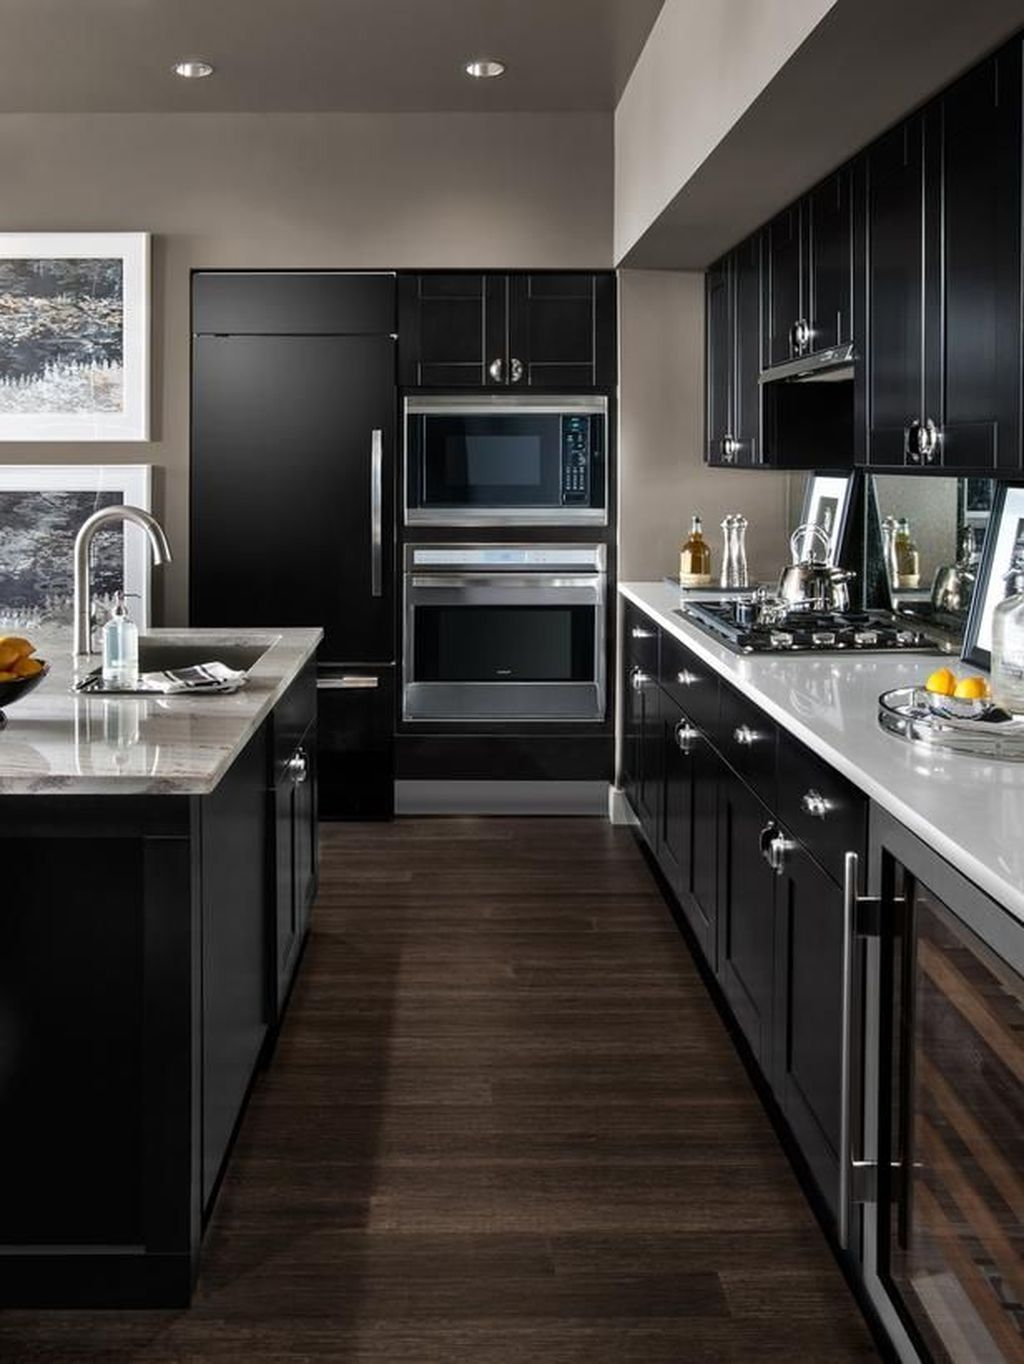 dark-paints.-1 80+ Unusual Kitchen Design Ideas for Small Spaces in 2021